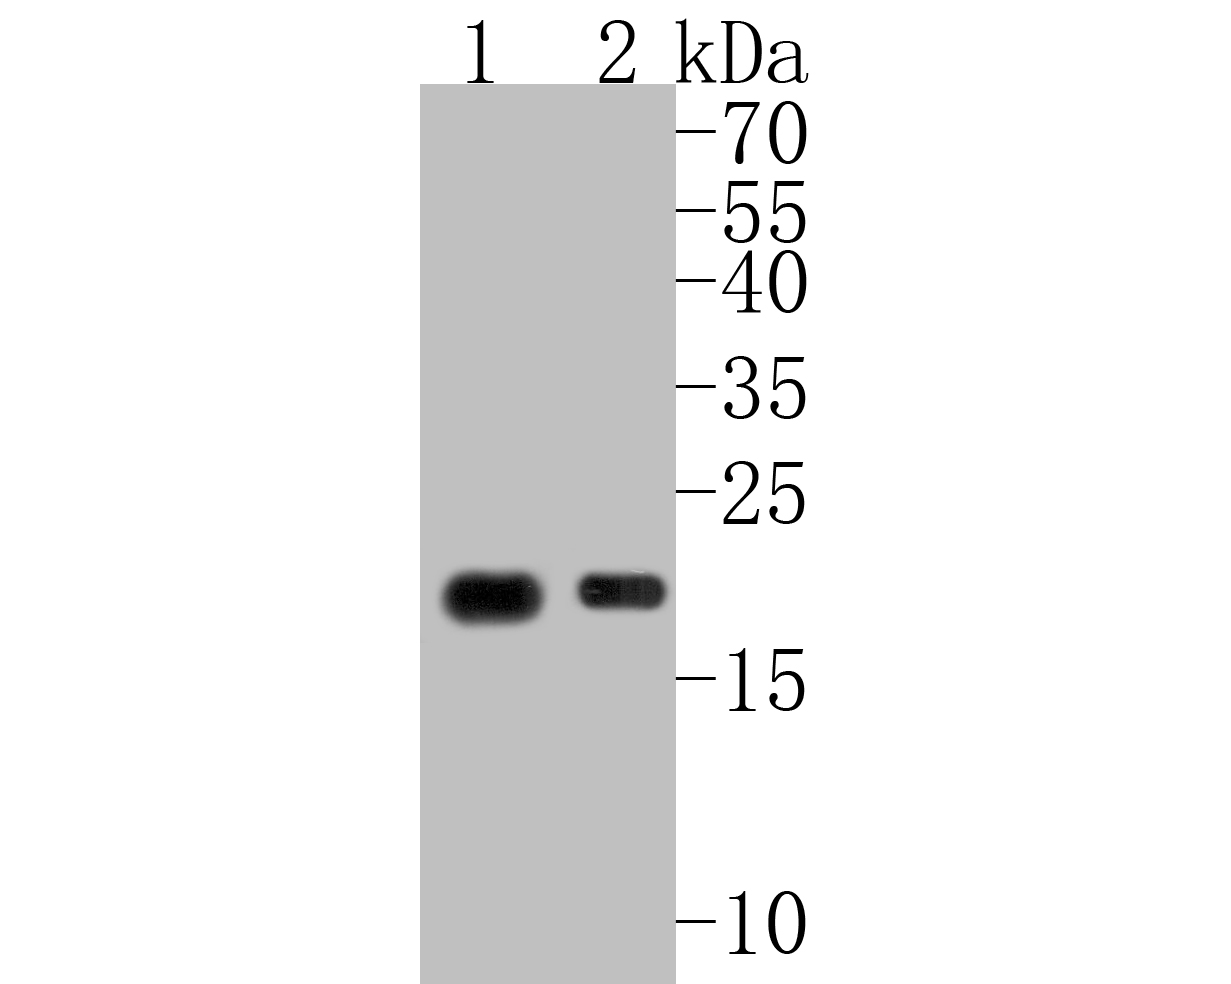 Western blot analysis of CD3 epsilon on different lysates. Proteins were transferred to a PVDF membrane and blocked with 5% BSA in PBS for 1 hour at room temperature. The primary antibody (ET1607-29, 1/500) was used in 5% BSA at room temperature for 2 hours. Goat Anti-Rabbit IgG - HRP Secondary Antibody (HA1001) at 1:5,000 dilution was used for 1 hour at room temperature.<br /> Positive control: <br /> Lane 1: human thymus tissue lysate<br /> Lane 2: Jurkat cell lysate